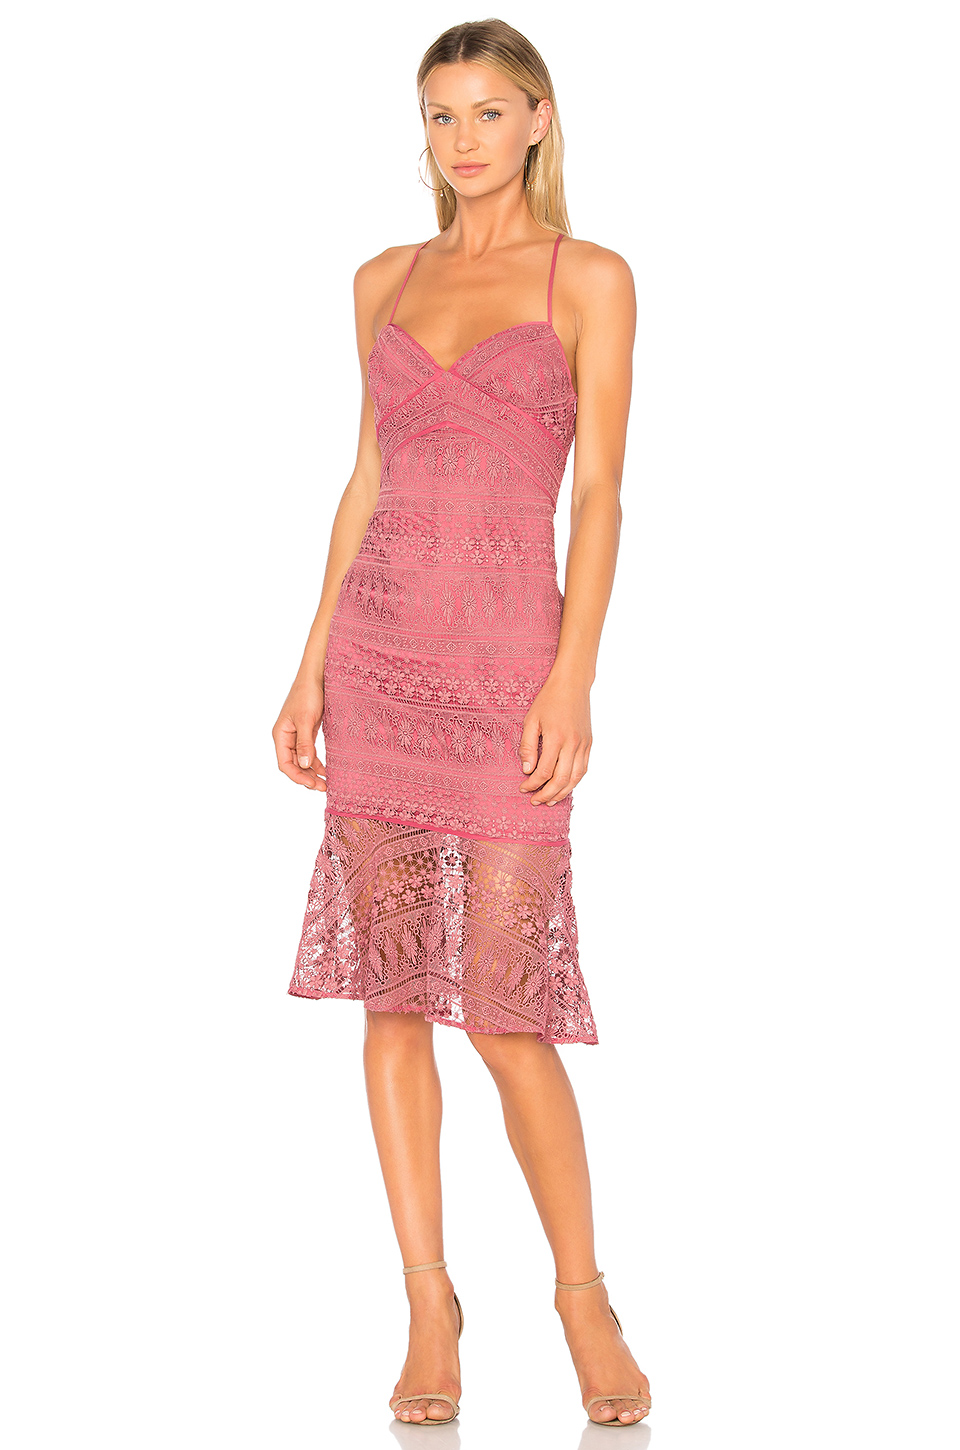 Pretty in Pink - Lace details make it feminine and elegant at the same time. With the right accessories this dress can easily be dressed up.